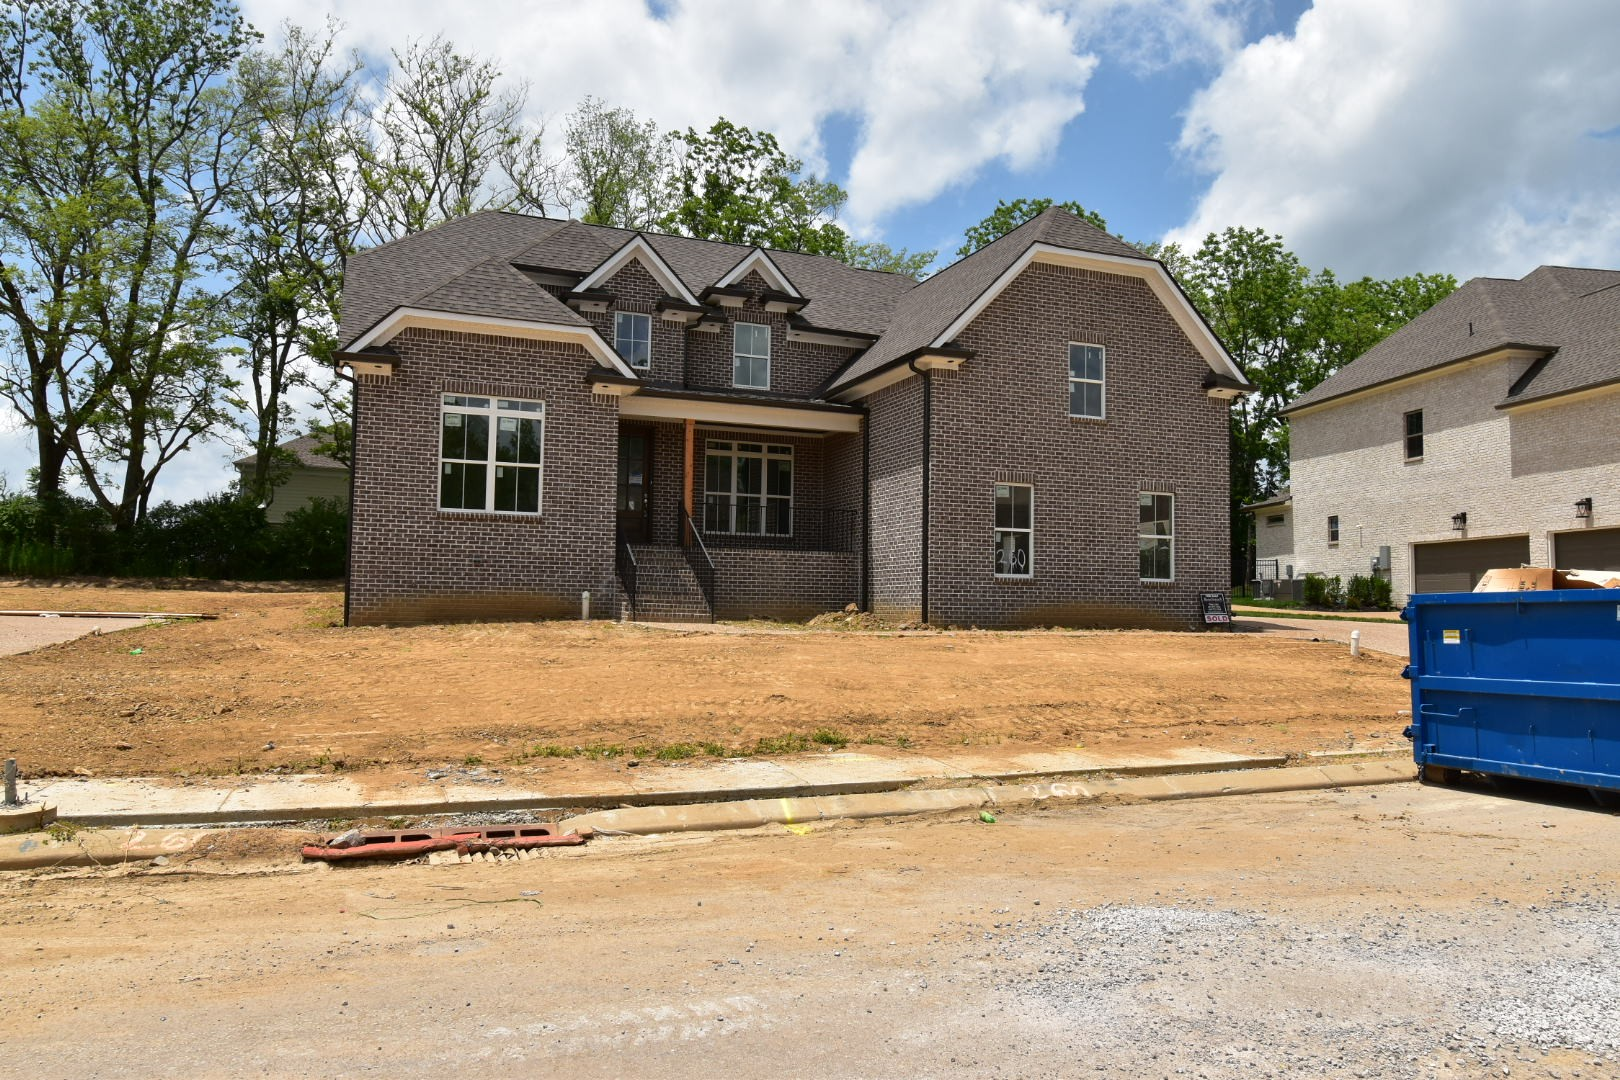 All Brick home by Landmark Building Co backs to mature tree line. Beautiful 2 Story Foyer, Open Family rm w/ cedar mantel on FP; Shiplap breakfast room wall; Open kitchen w/ large walk-in Pantry; Open Formal DR w/ Butlers Pantry; Master & Guest suite on main; Spacious BR's up; Lots of closet space w/ 3 hallway linen closets; Step down Bonus Rm w/ wet bar & Closet; Tile surround tubs in secondary bathrooms; Walk-in attic storage space; Covered back porch steps down to patio.